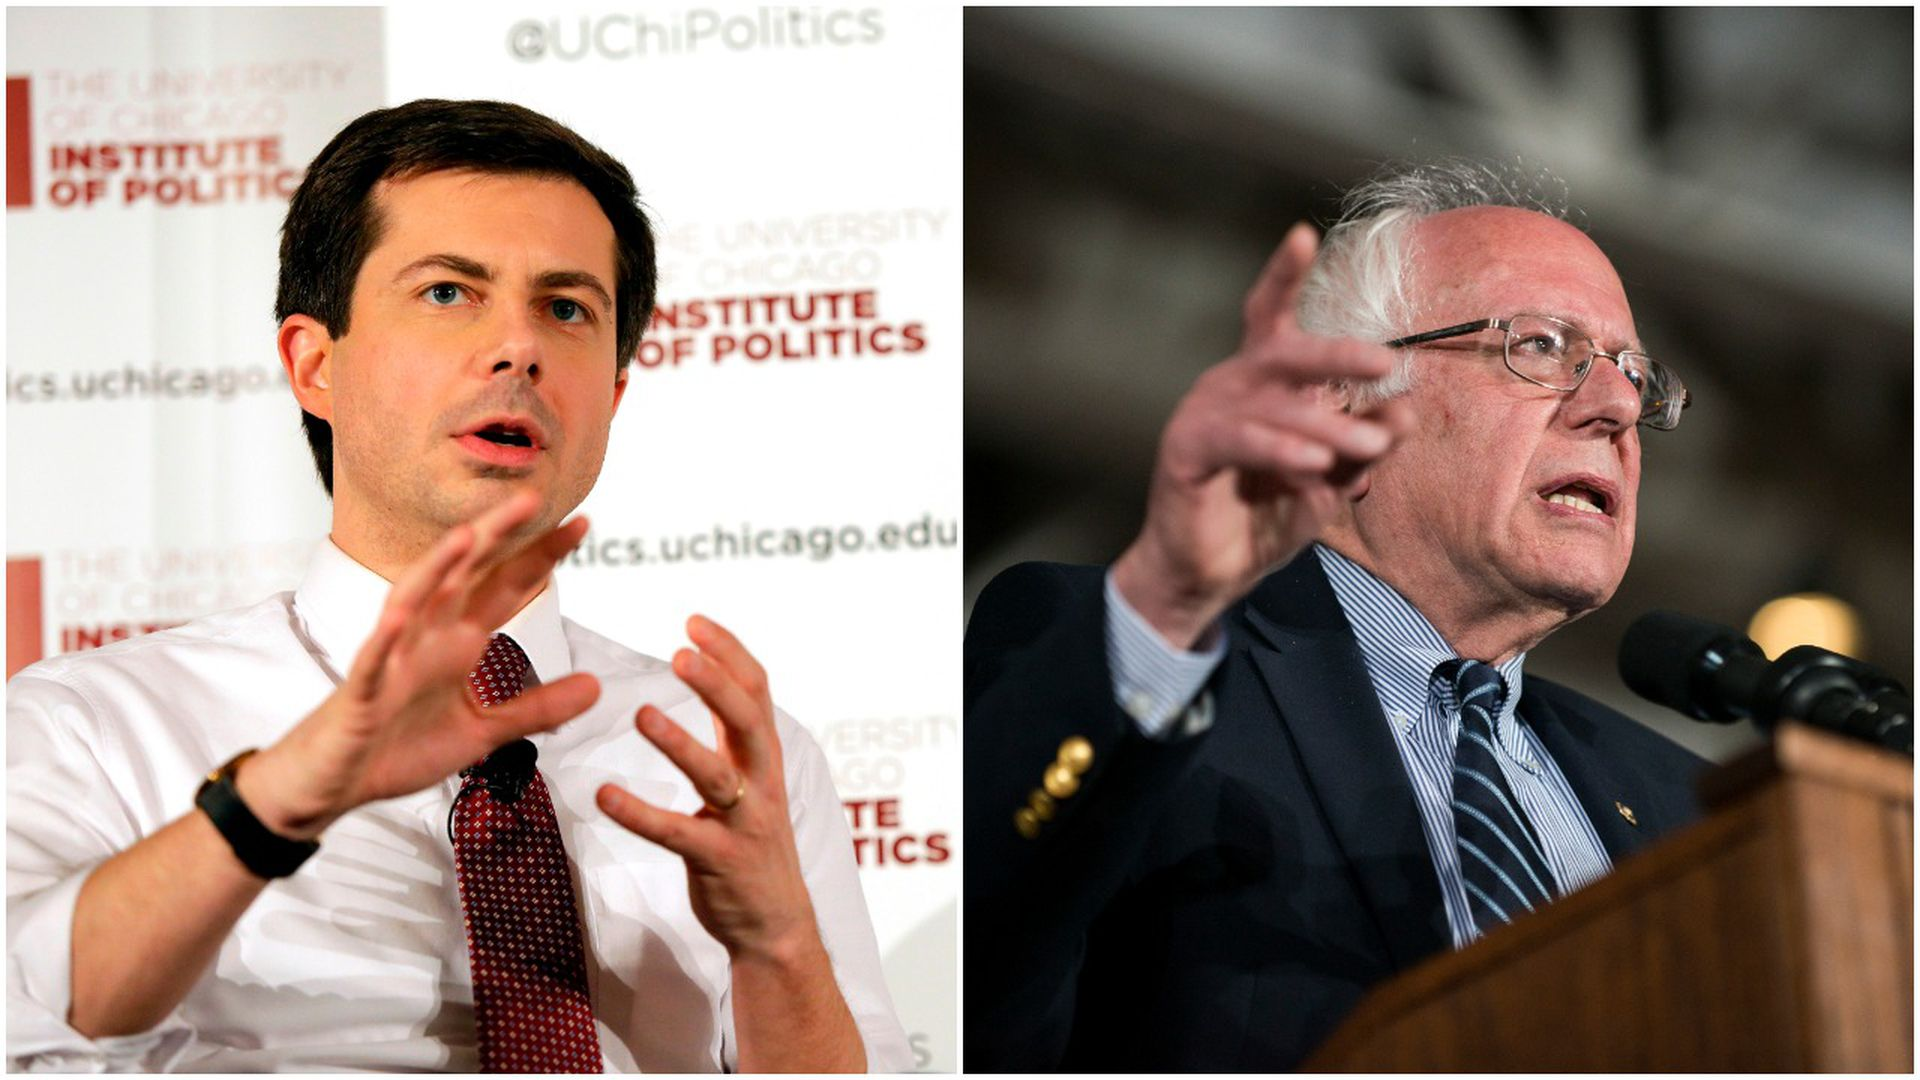 This image is a two-way split screen of Pete Buttigieg and Bernie Sanders